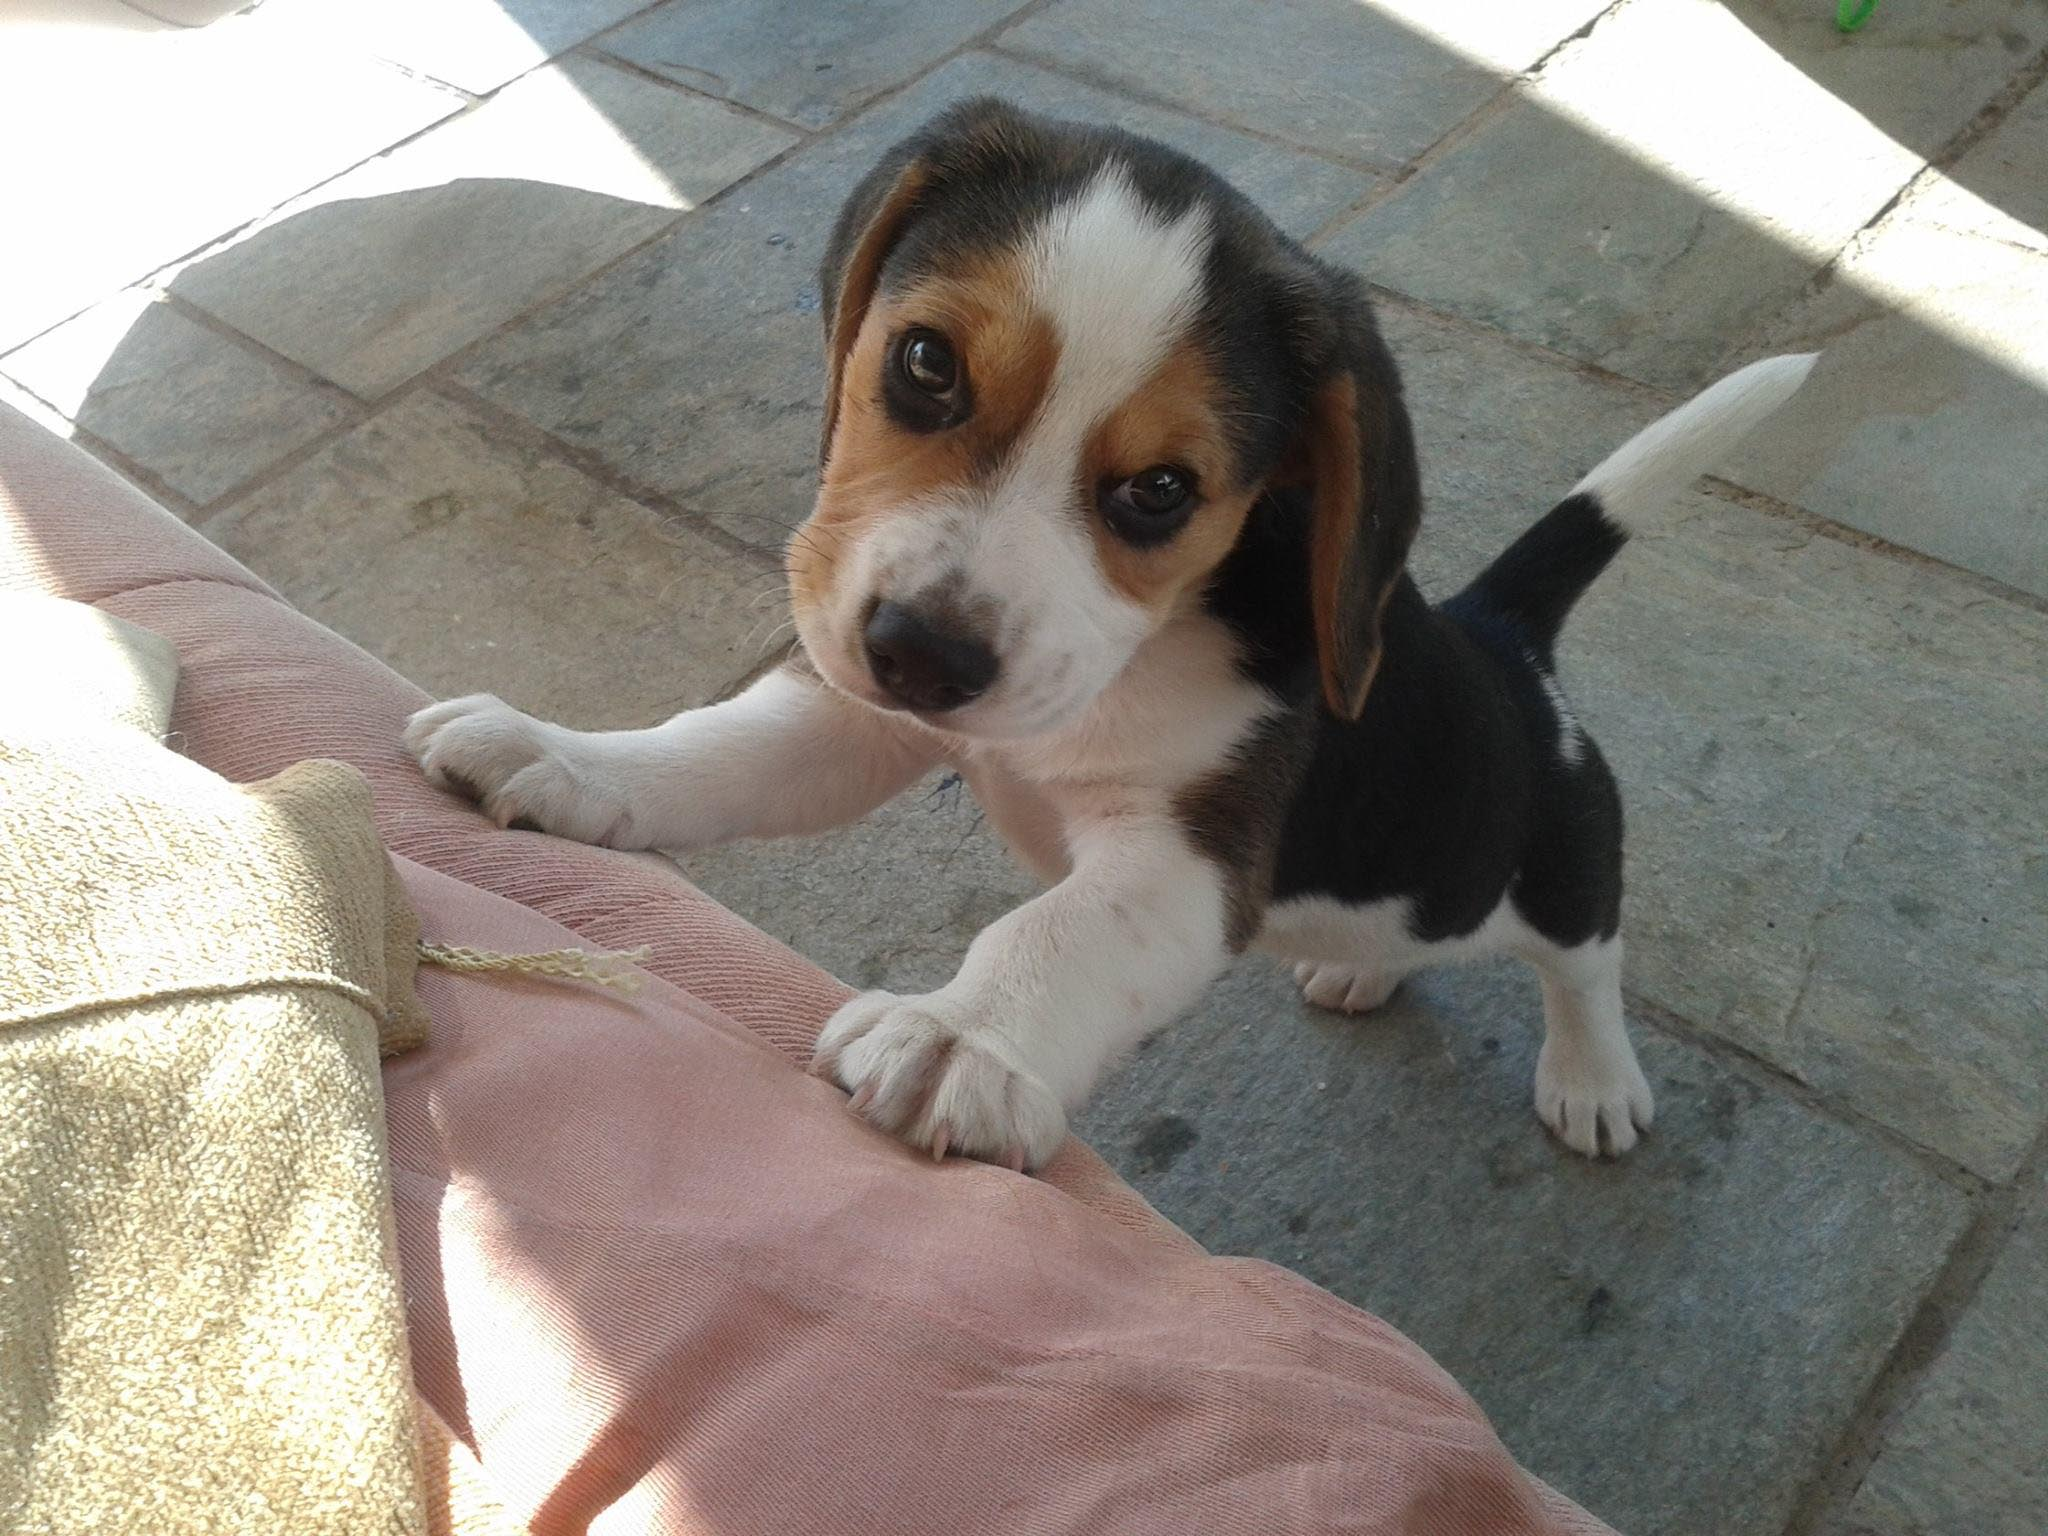 How Much Should I Feed a 4 Month Old Beagle